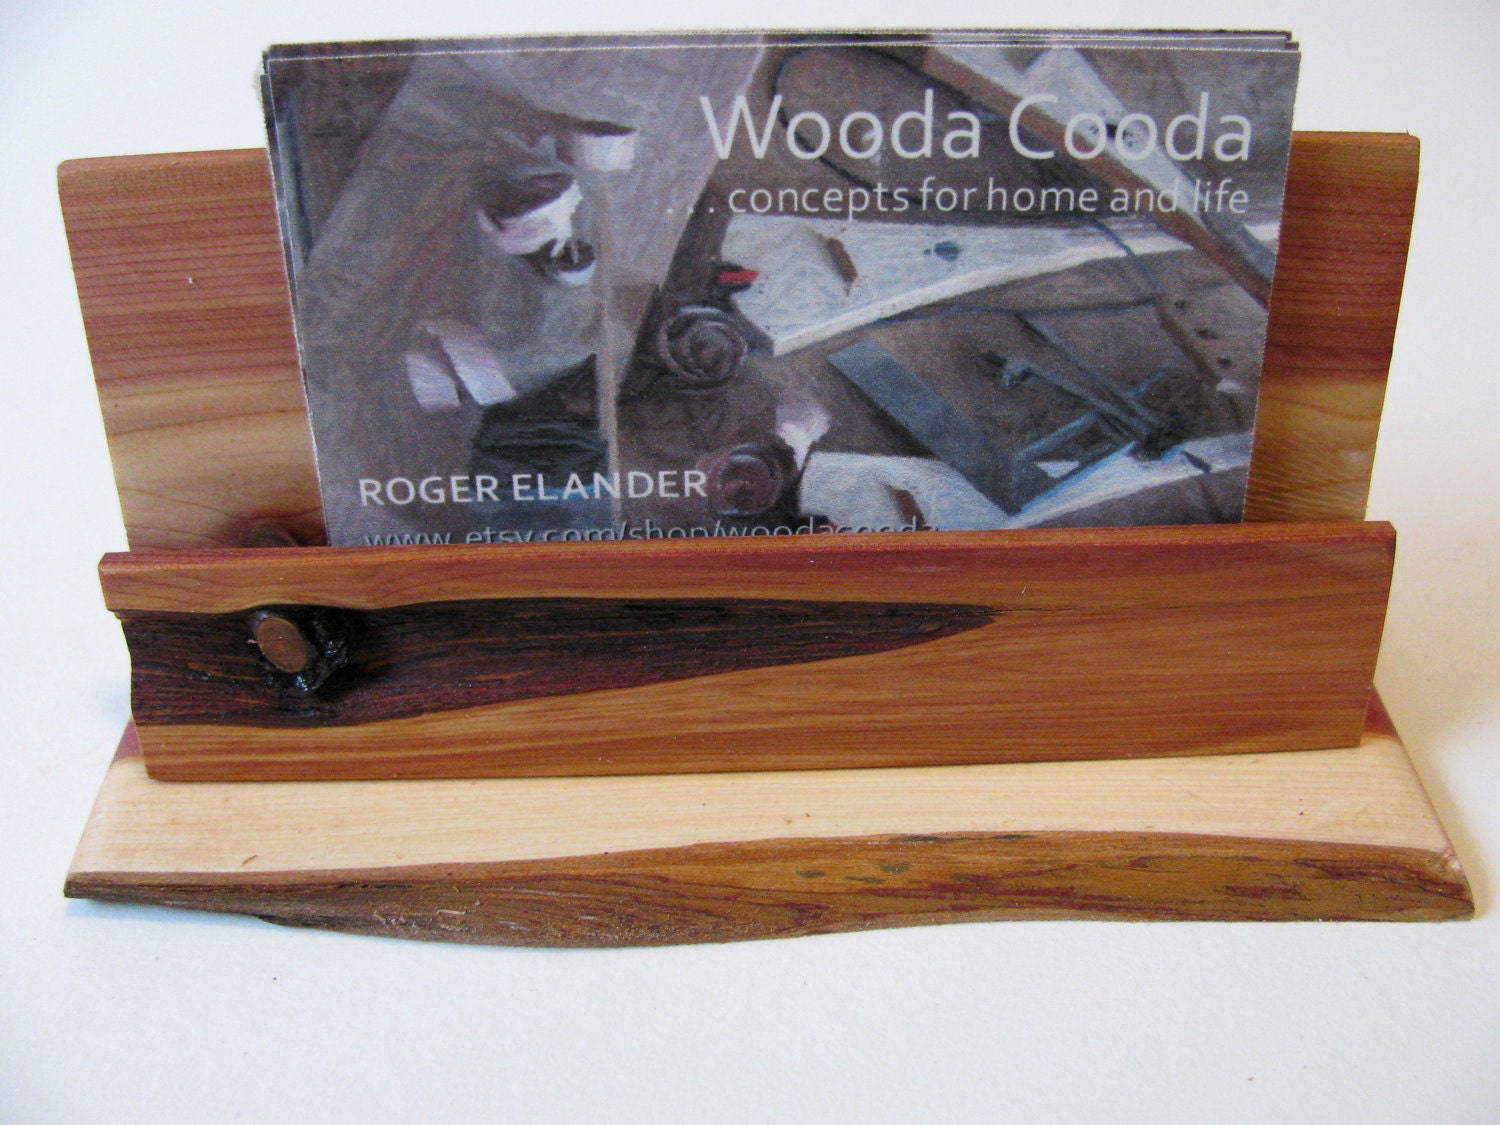 Wood business card holder custom made juniper by woodacooda for Juniper business card